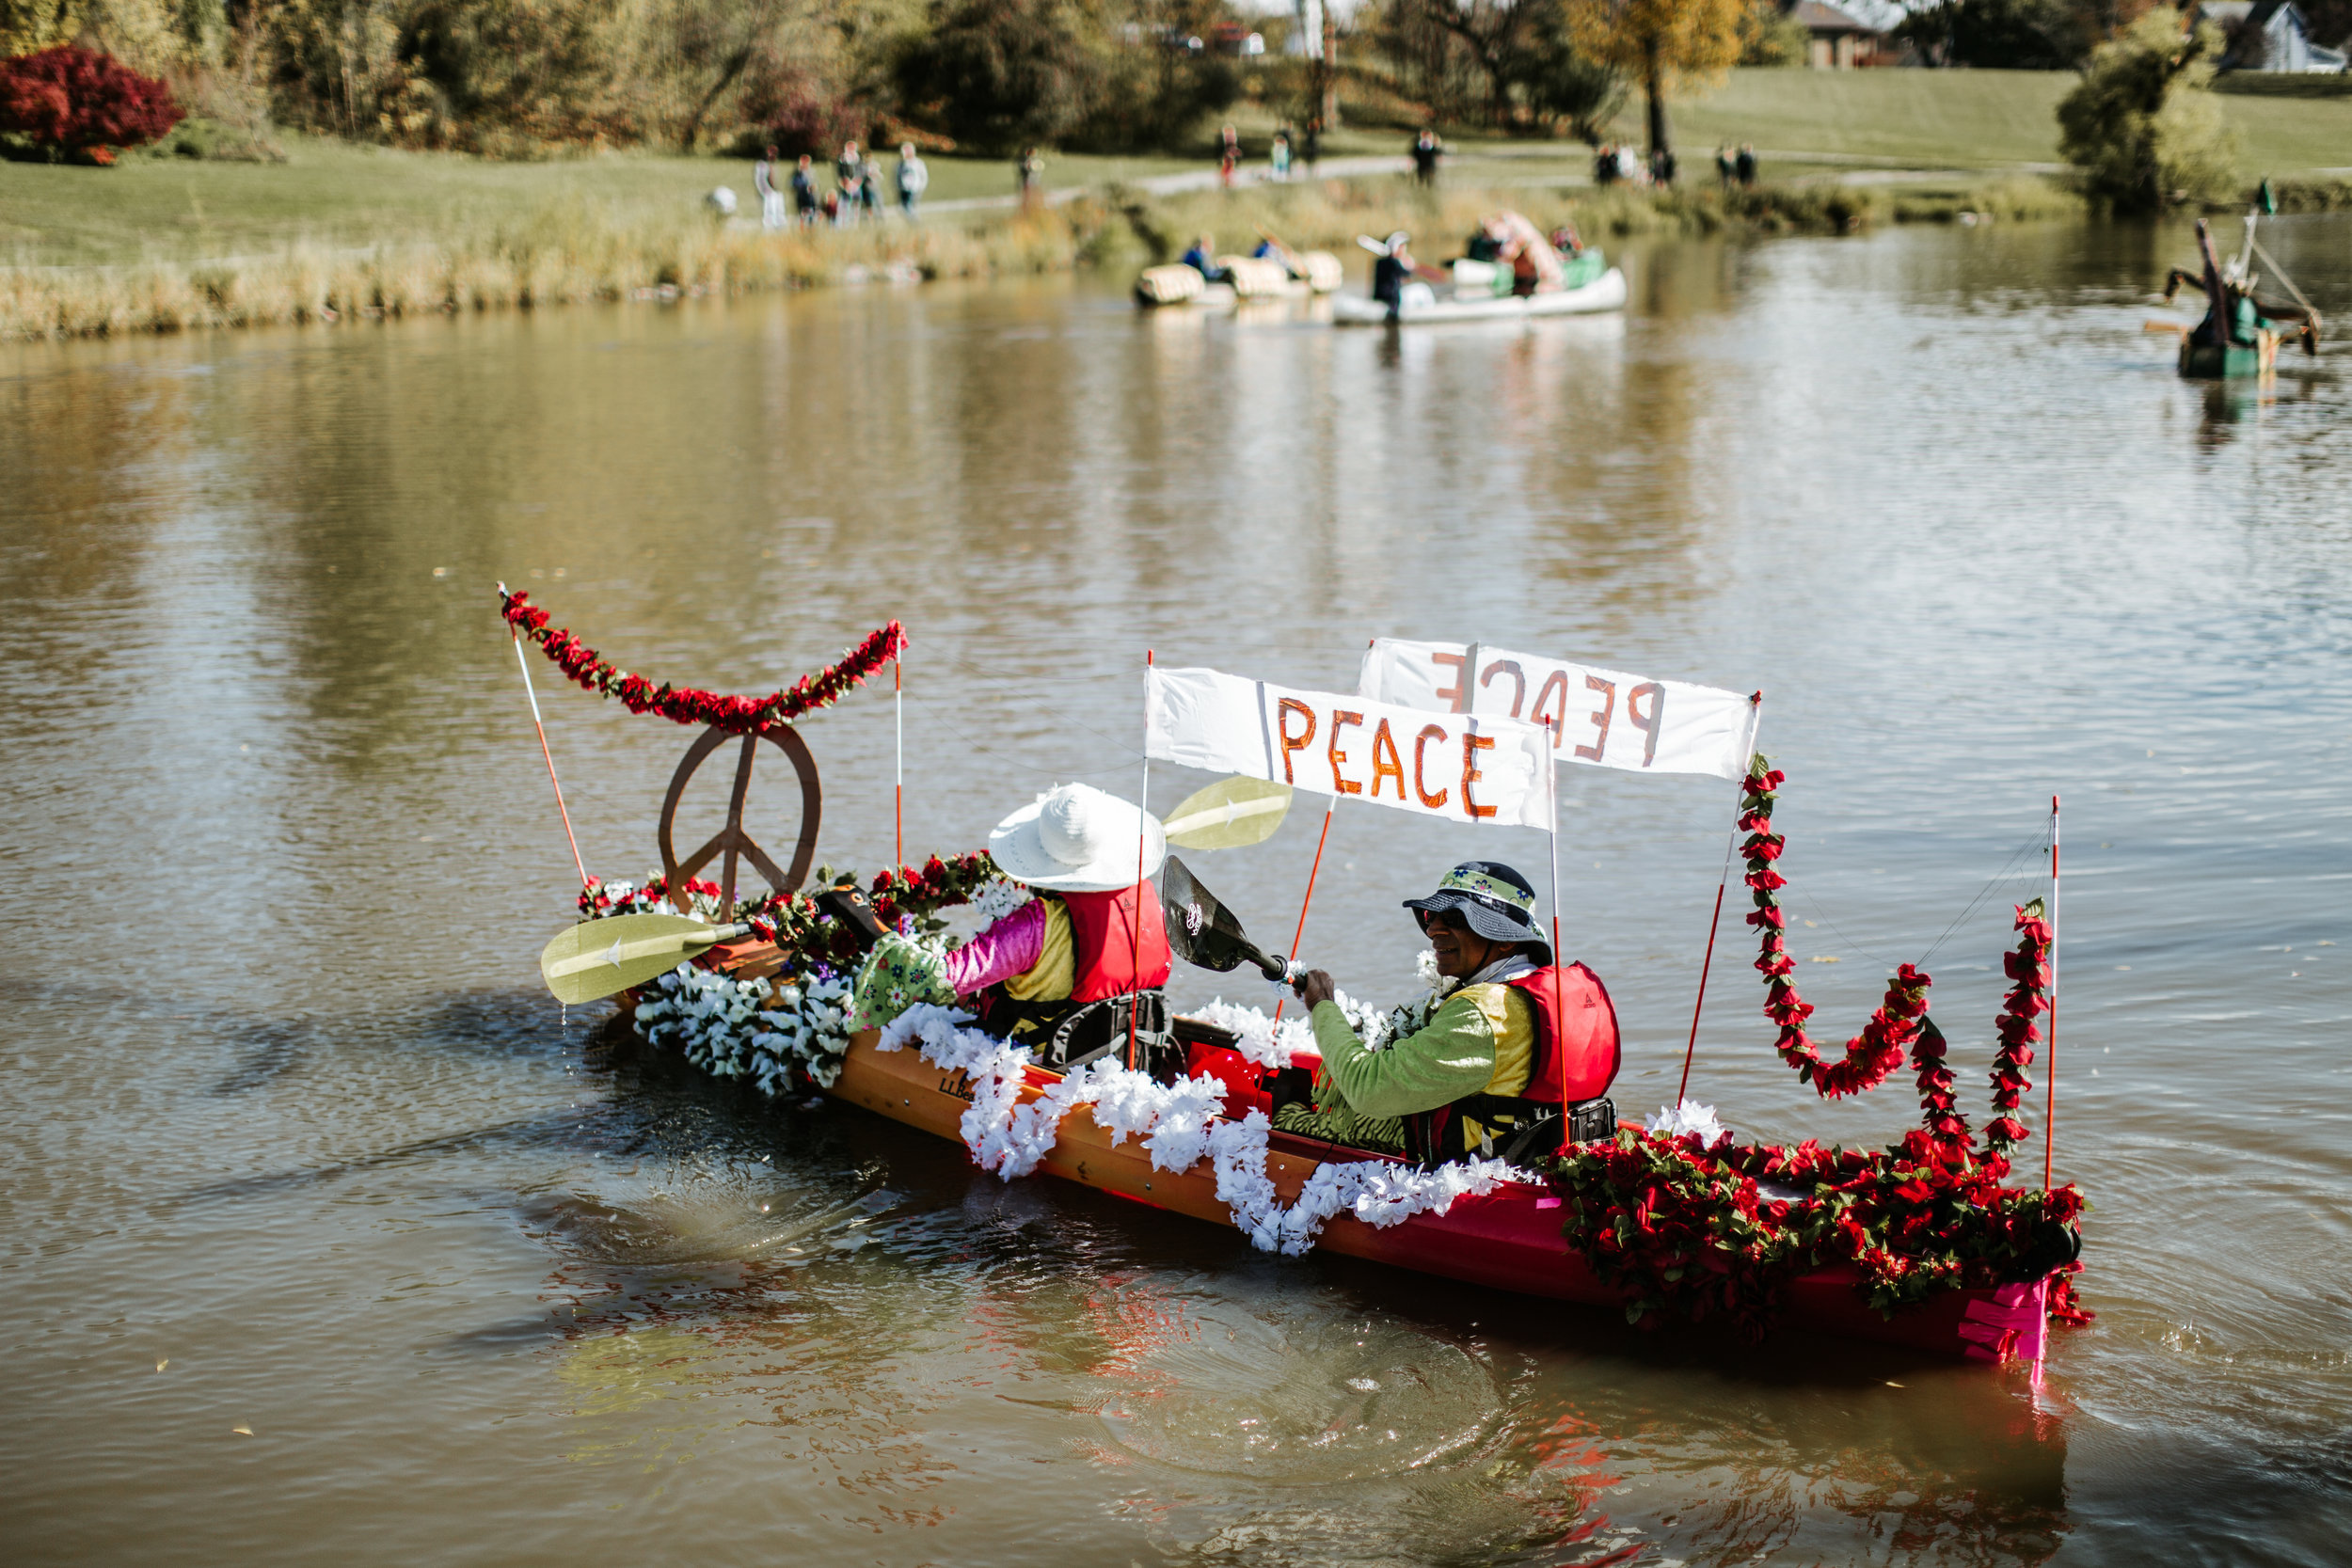 Colorful floral design and messages of peace won this kayak the highest award: the golden paddle. Photos by Friesen Photography.